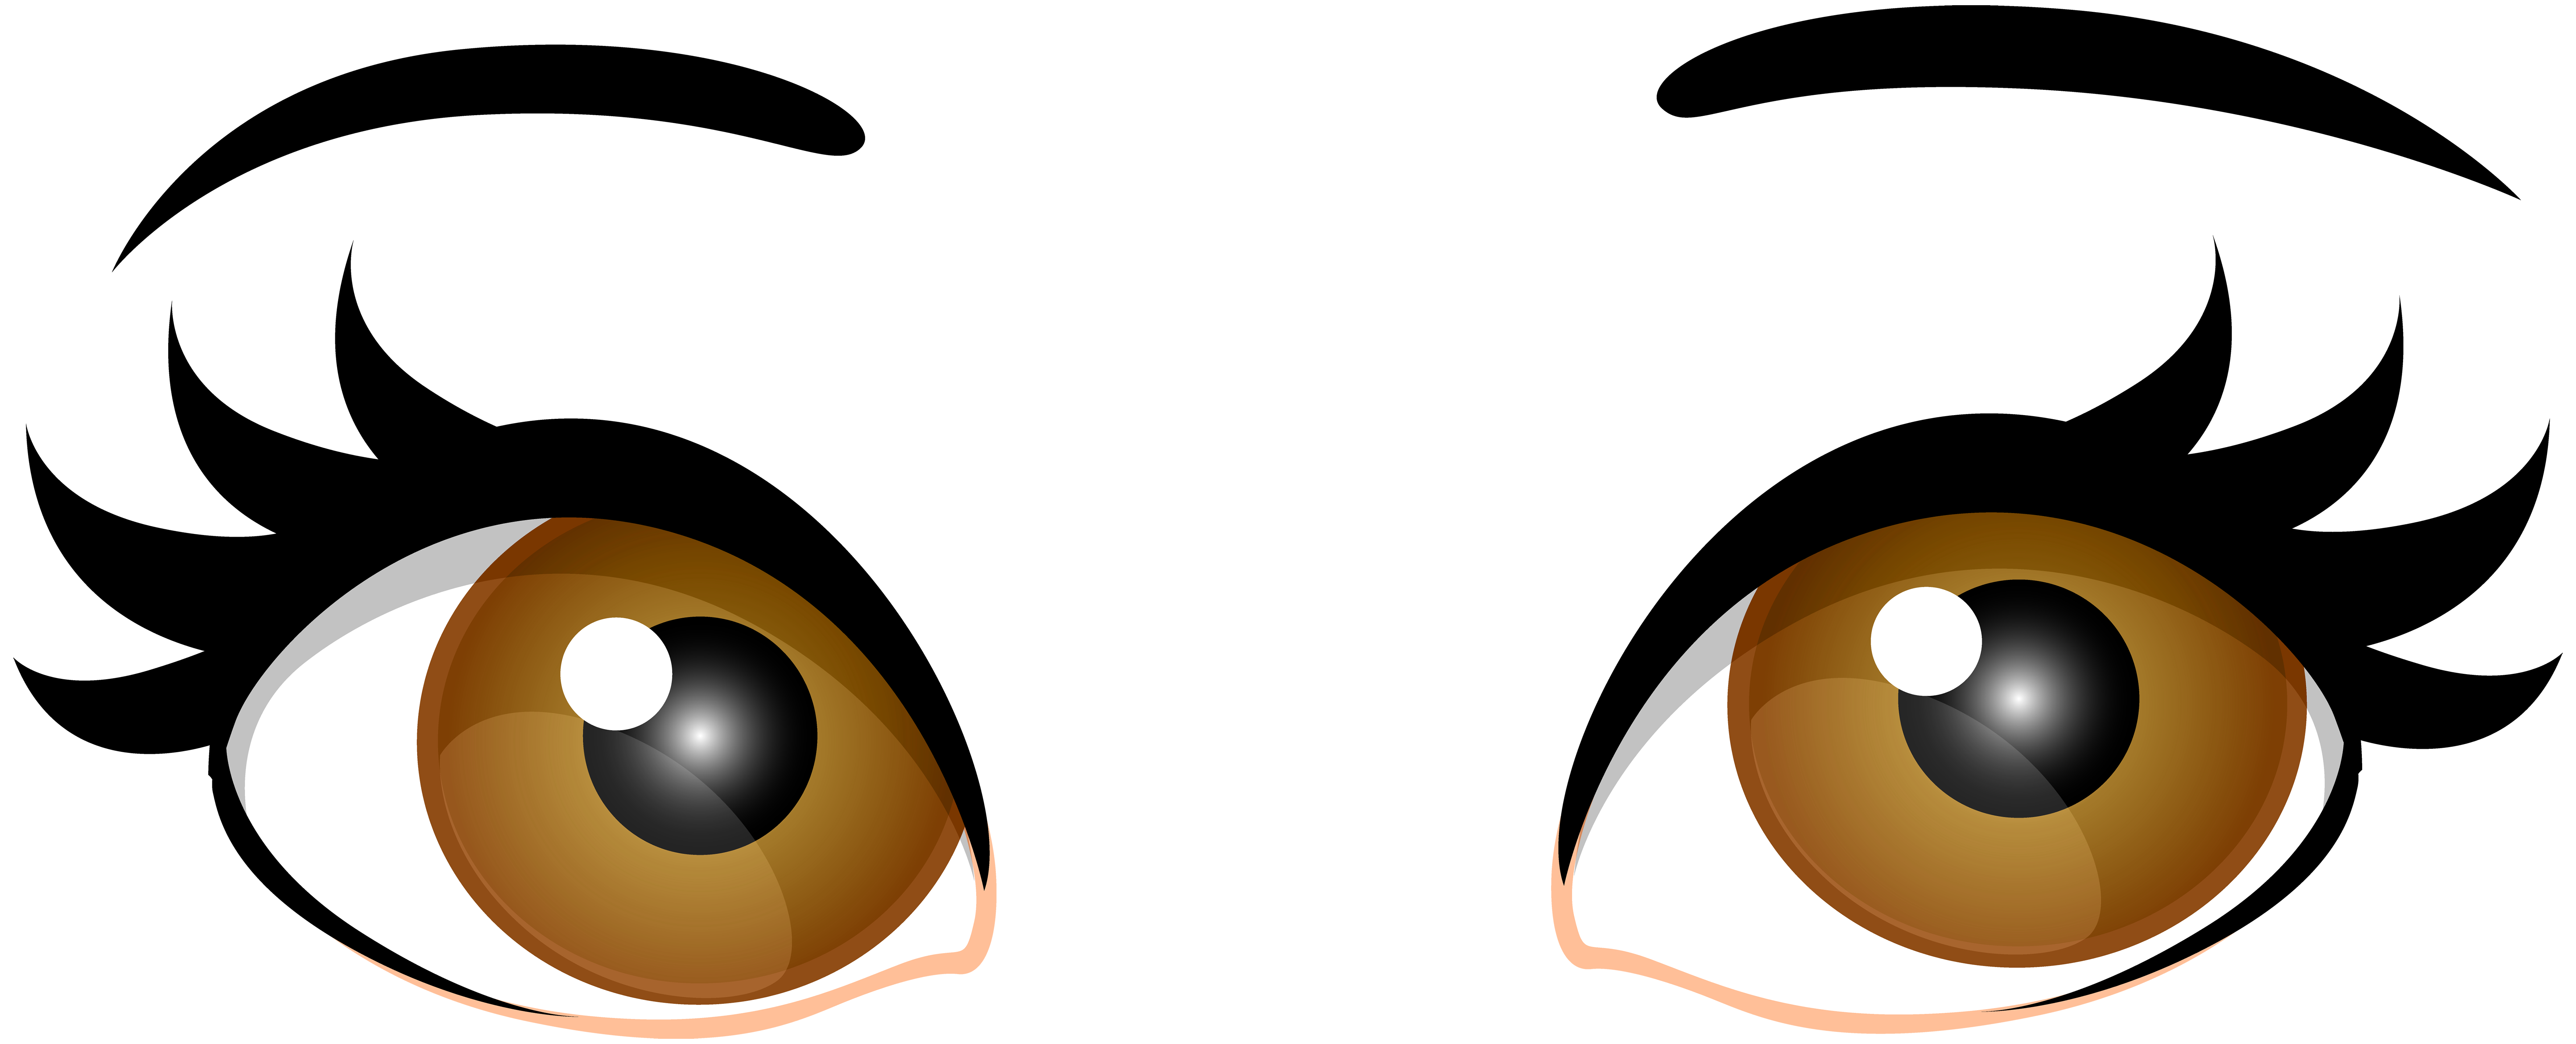 Female eyes png clip. Brown clipart graphic black and white download